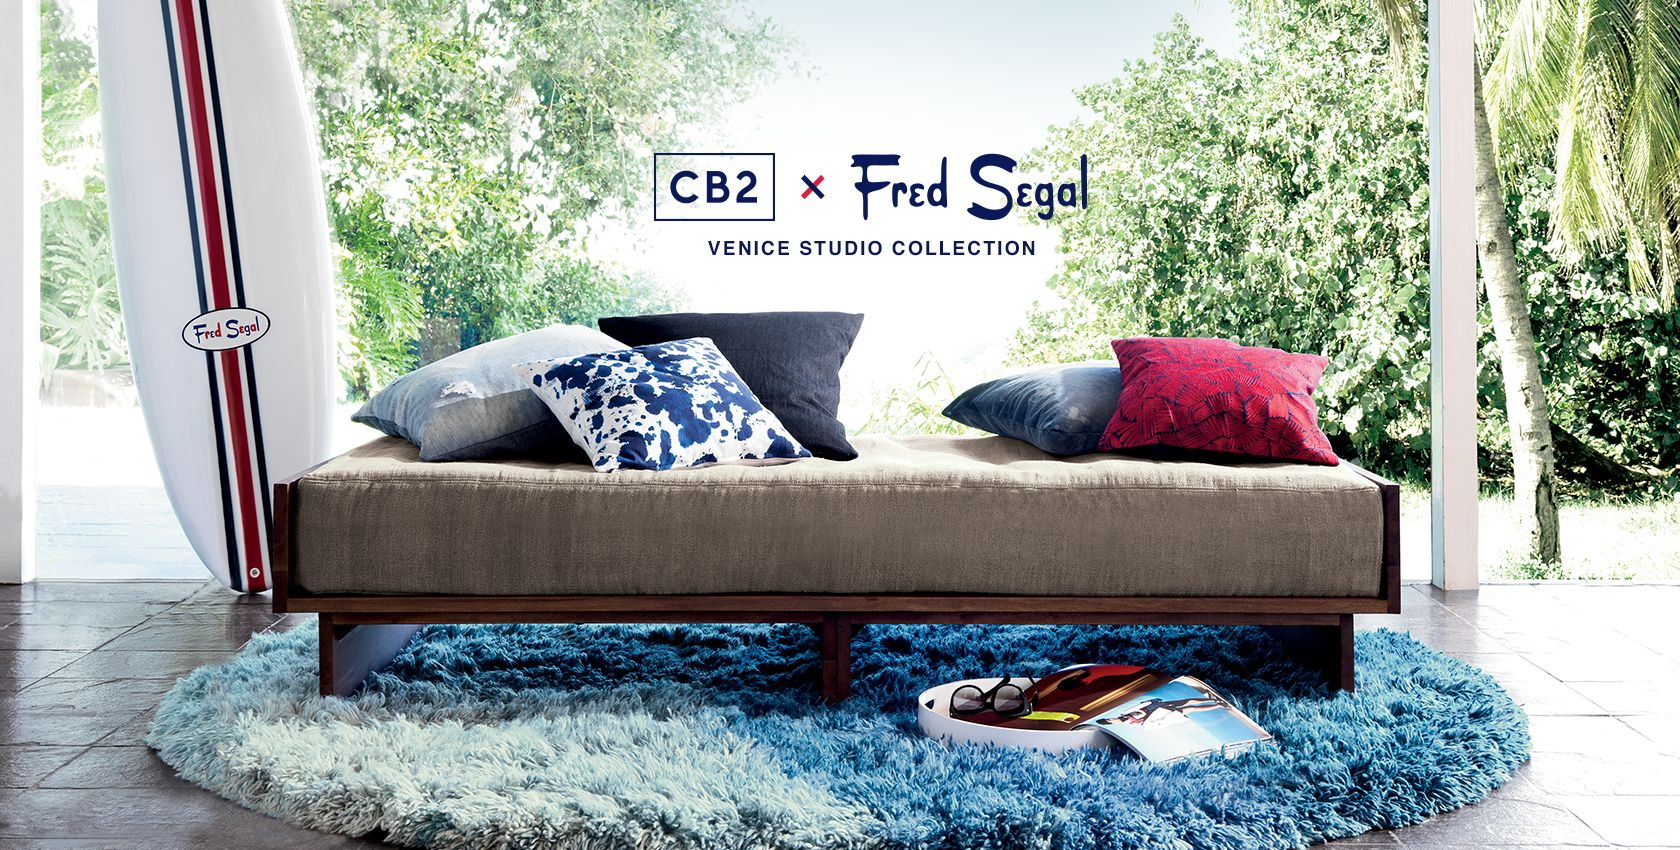 . Modern Furniture and Home Decor   CB2